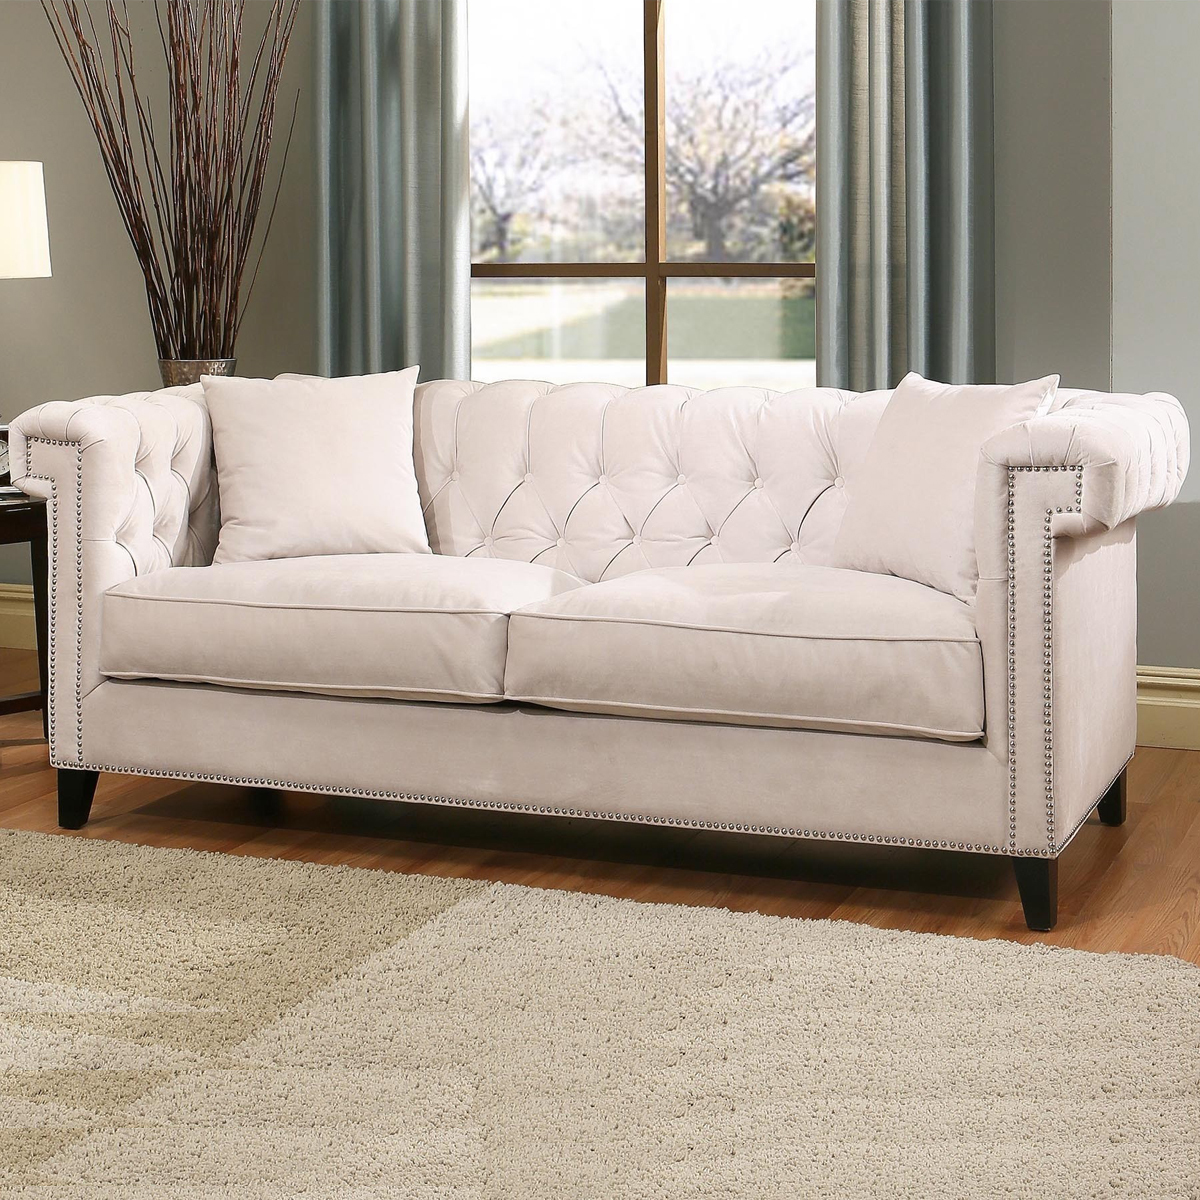 Ivory velvet love seat with two matching throw pillows. photo